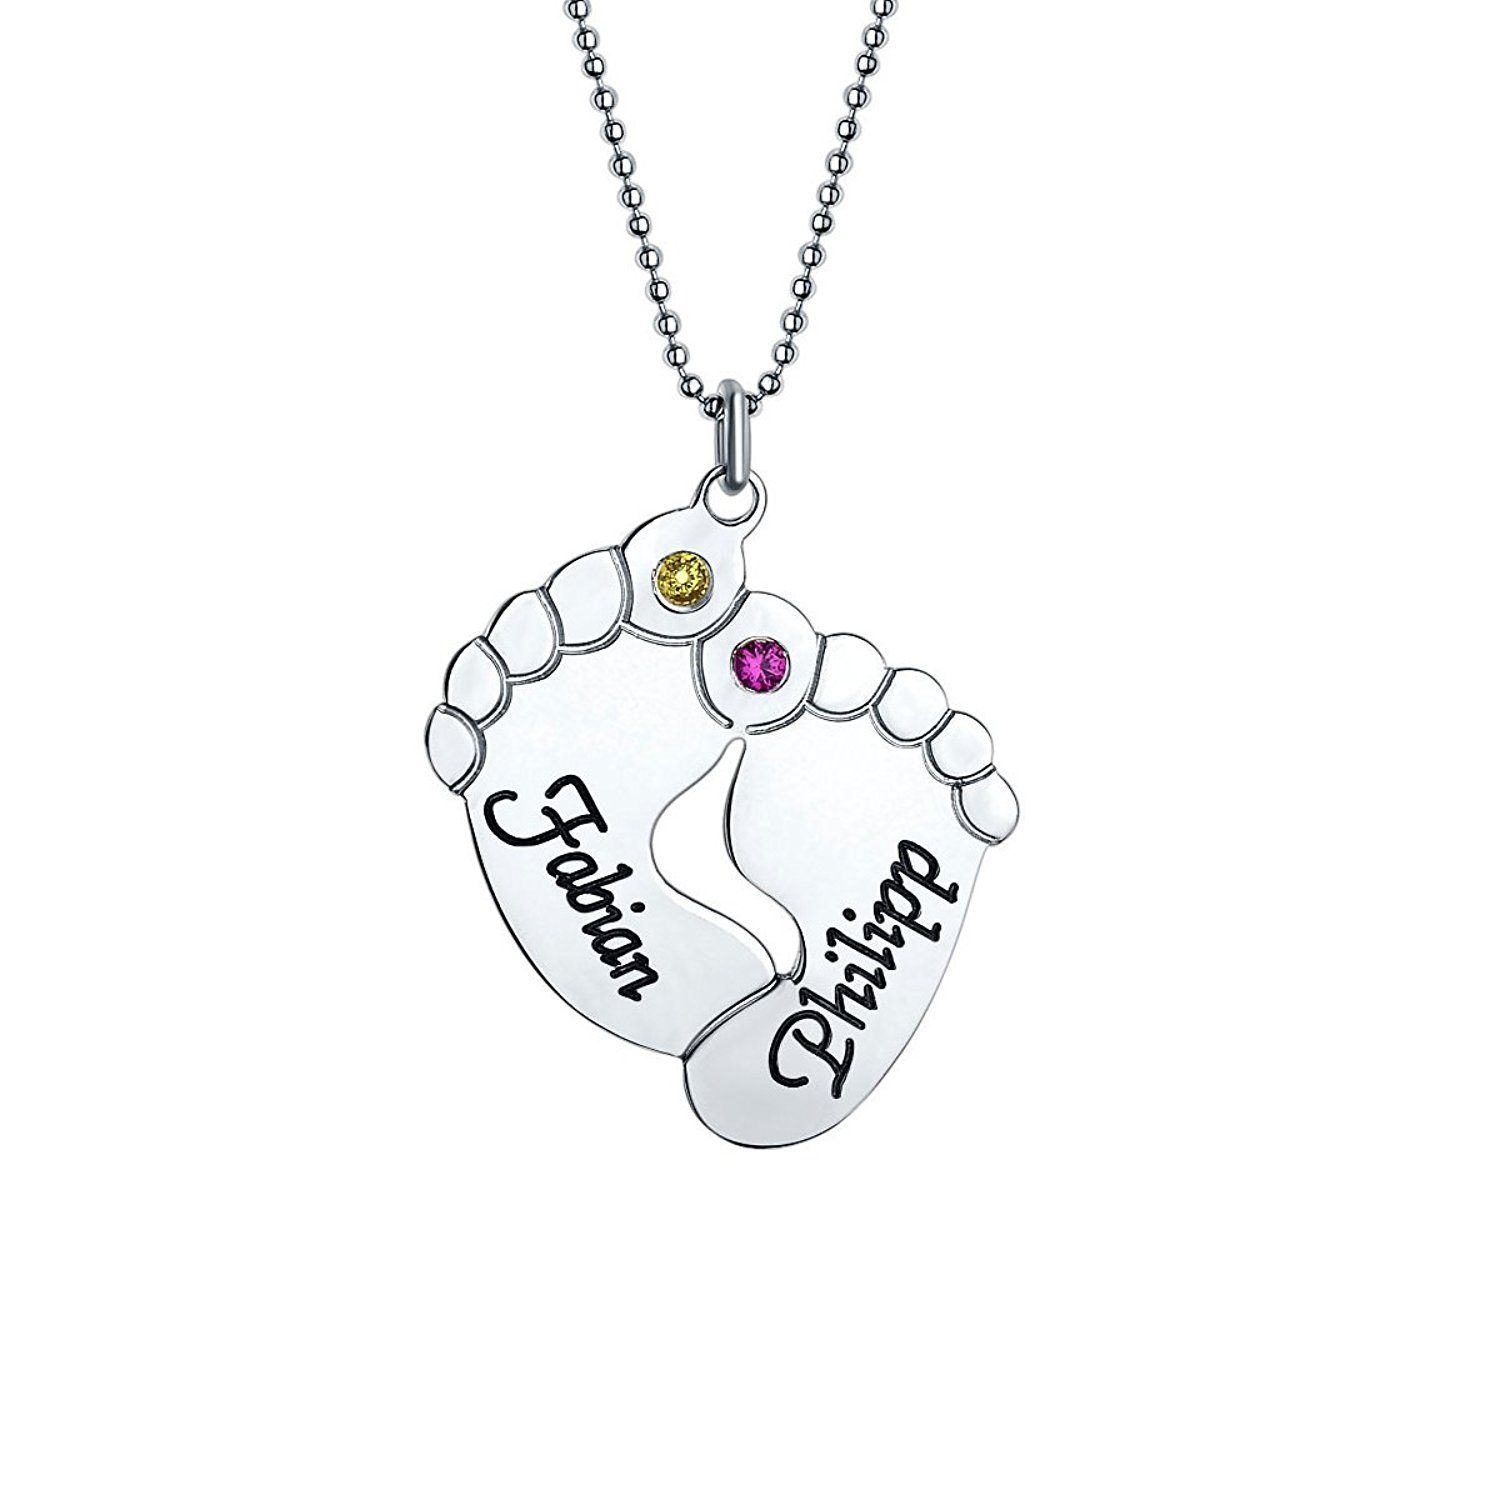 Mother Jewellery - Engraved Baby Feet Pendant Necklace with Personalised Birthstone - Custom Made with Any Name! yr4kaBpFC